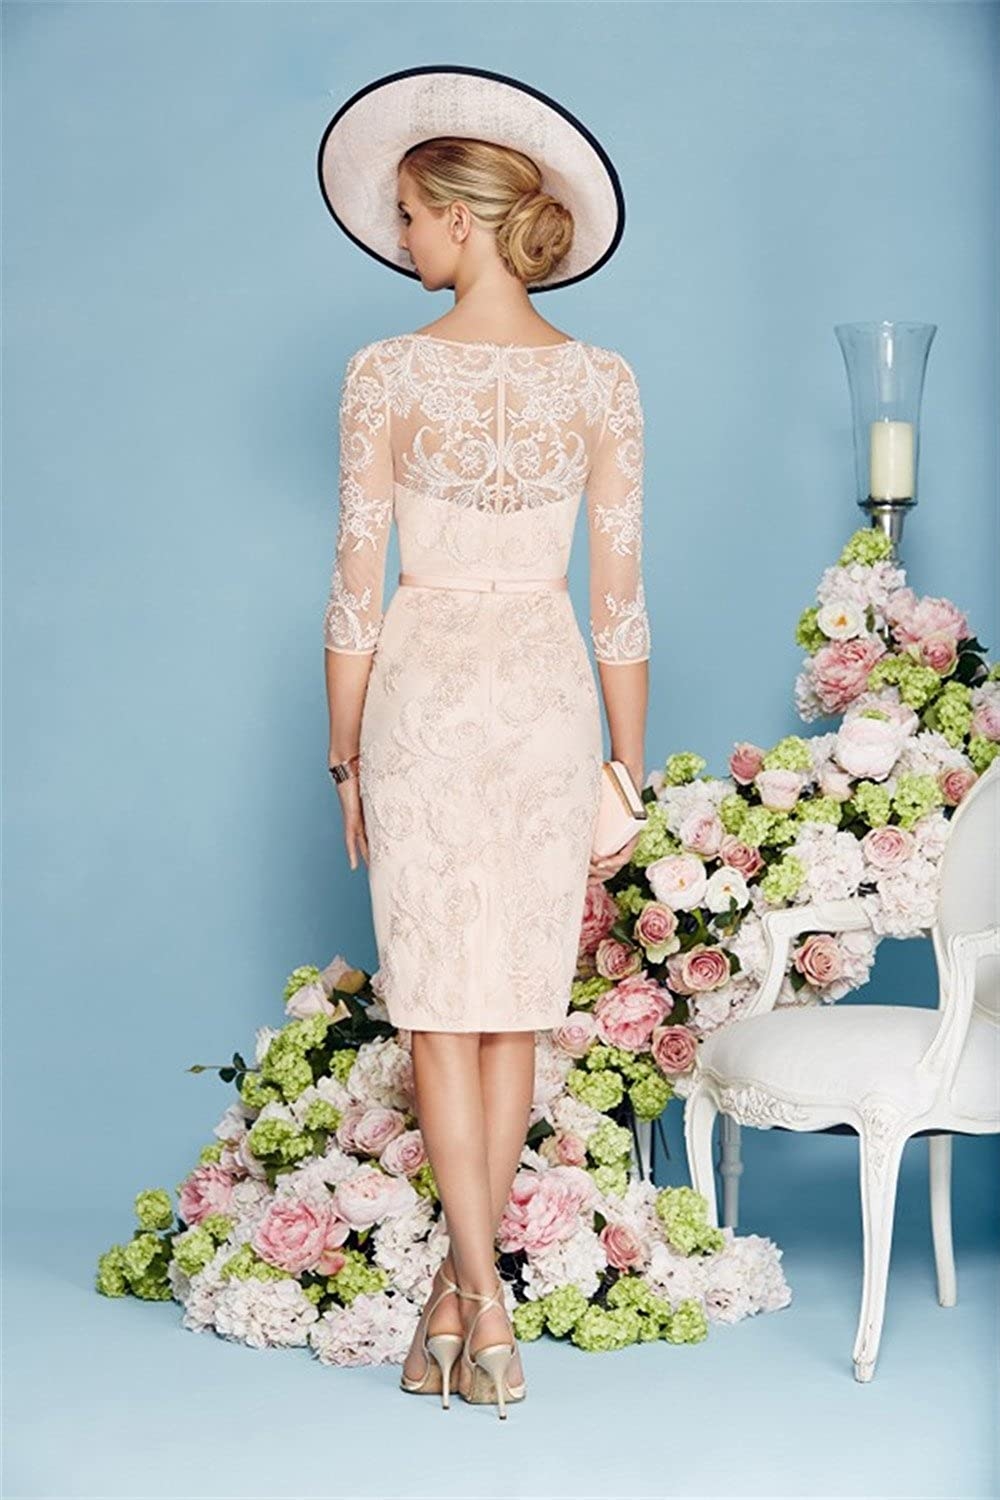 Fenghuavip Stylish 2 Pieces Light Pink Satin Lace Bridal Mother ...